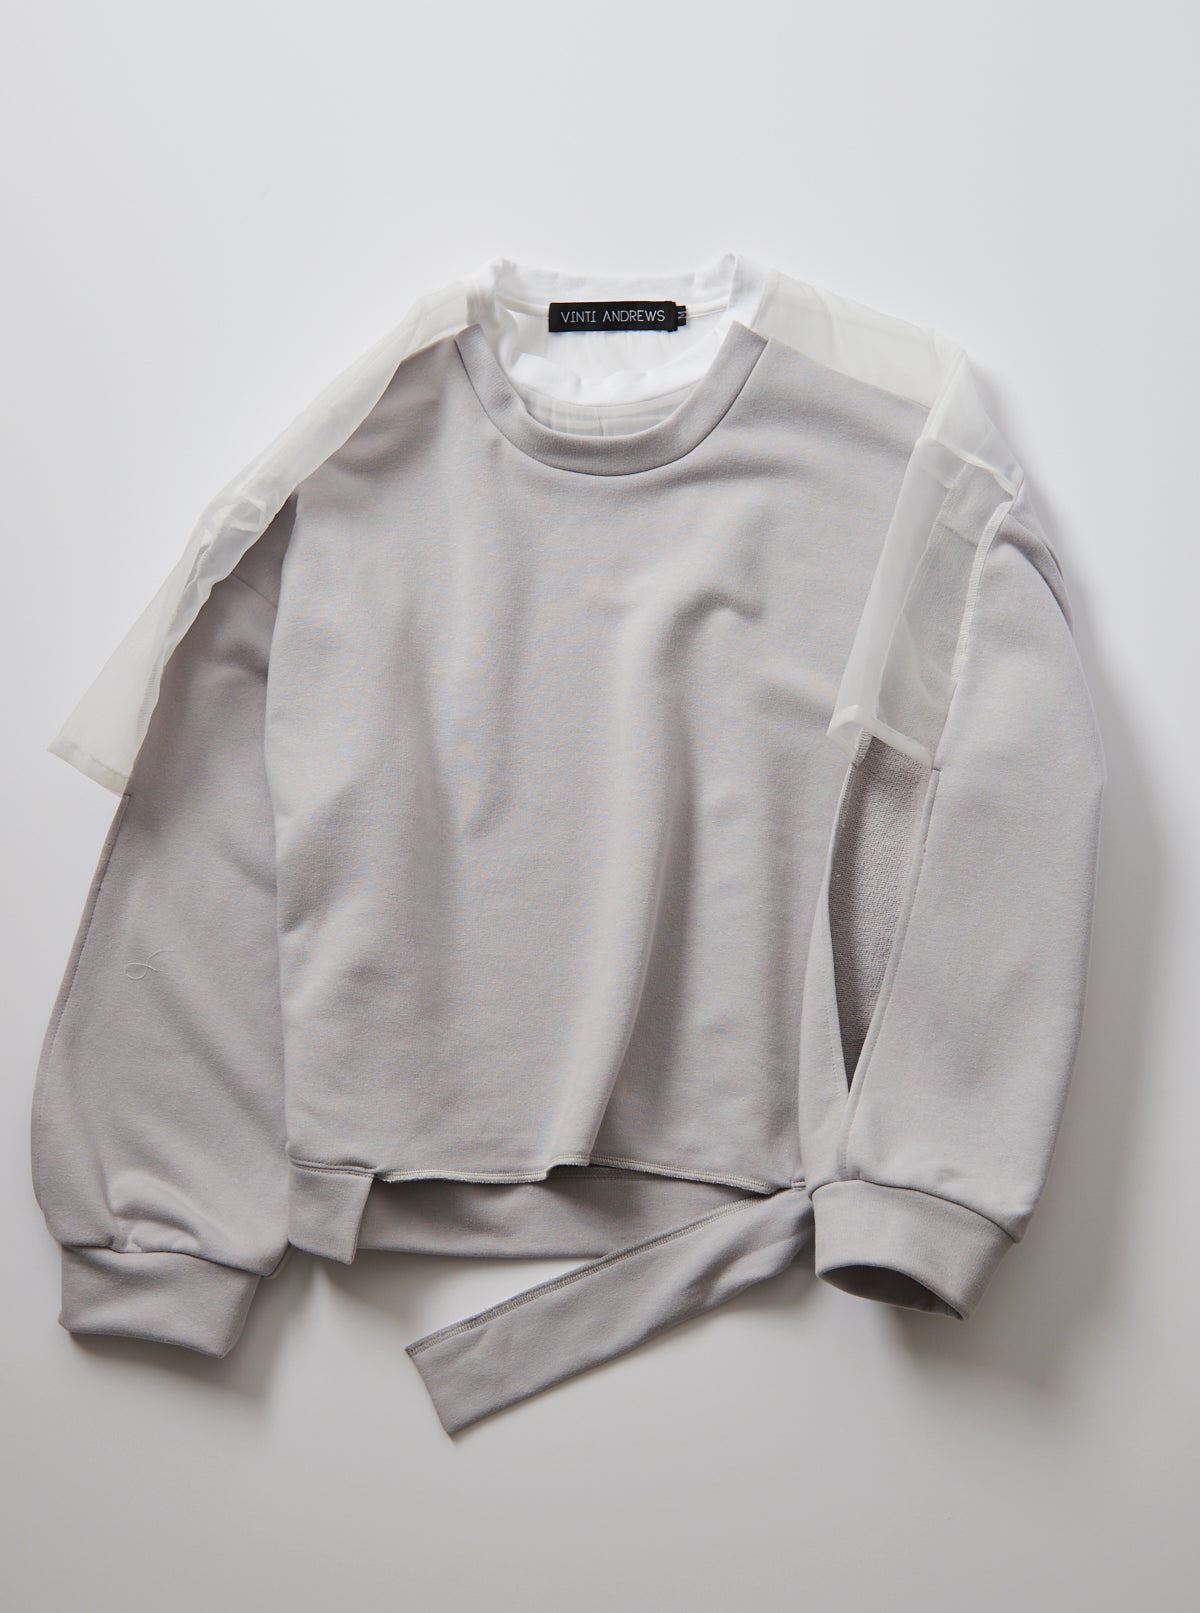 Vinti Andrews Organza T Shirt Sweater